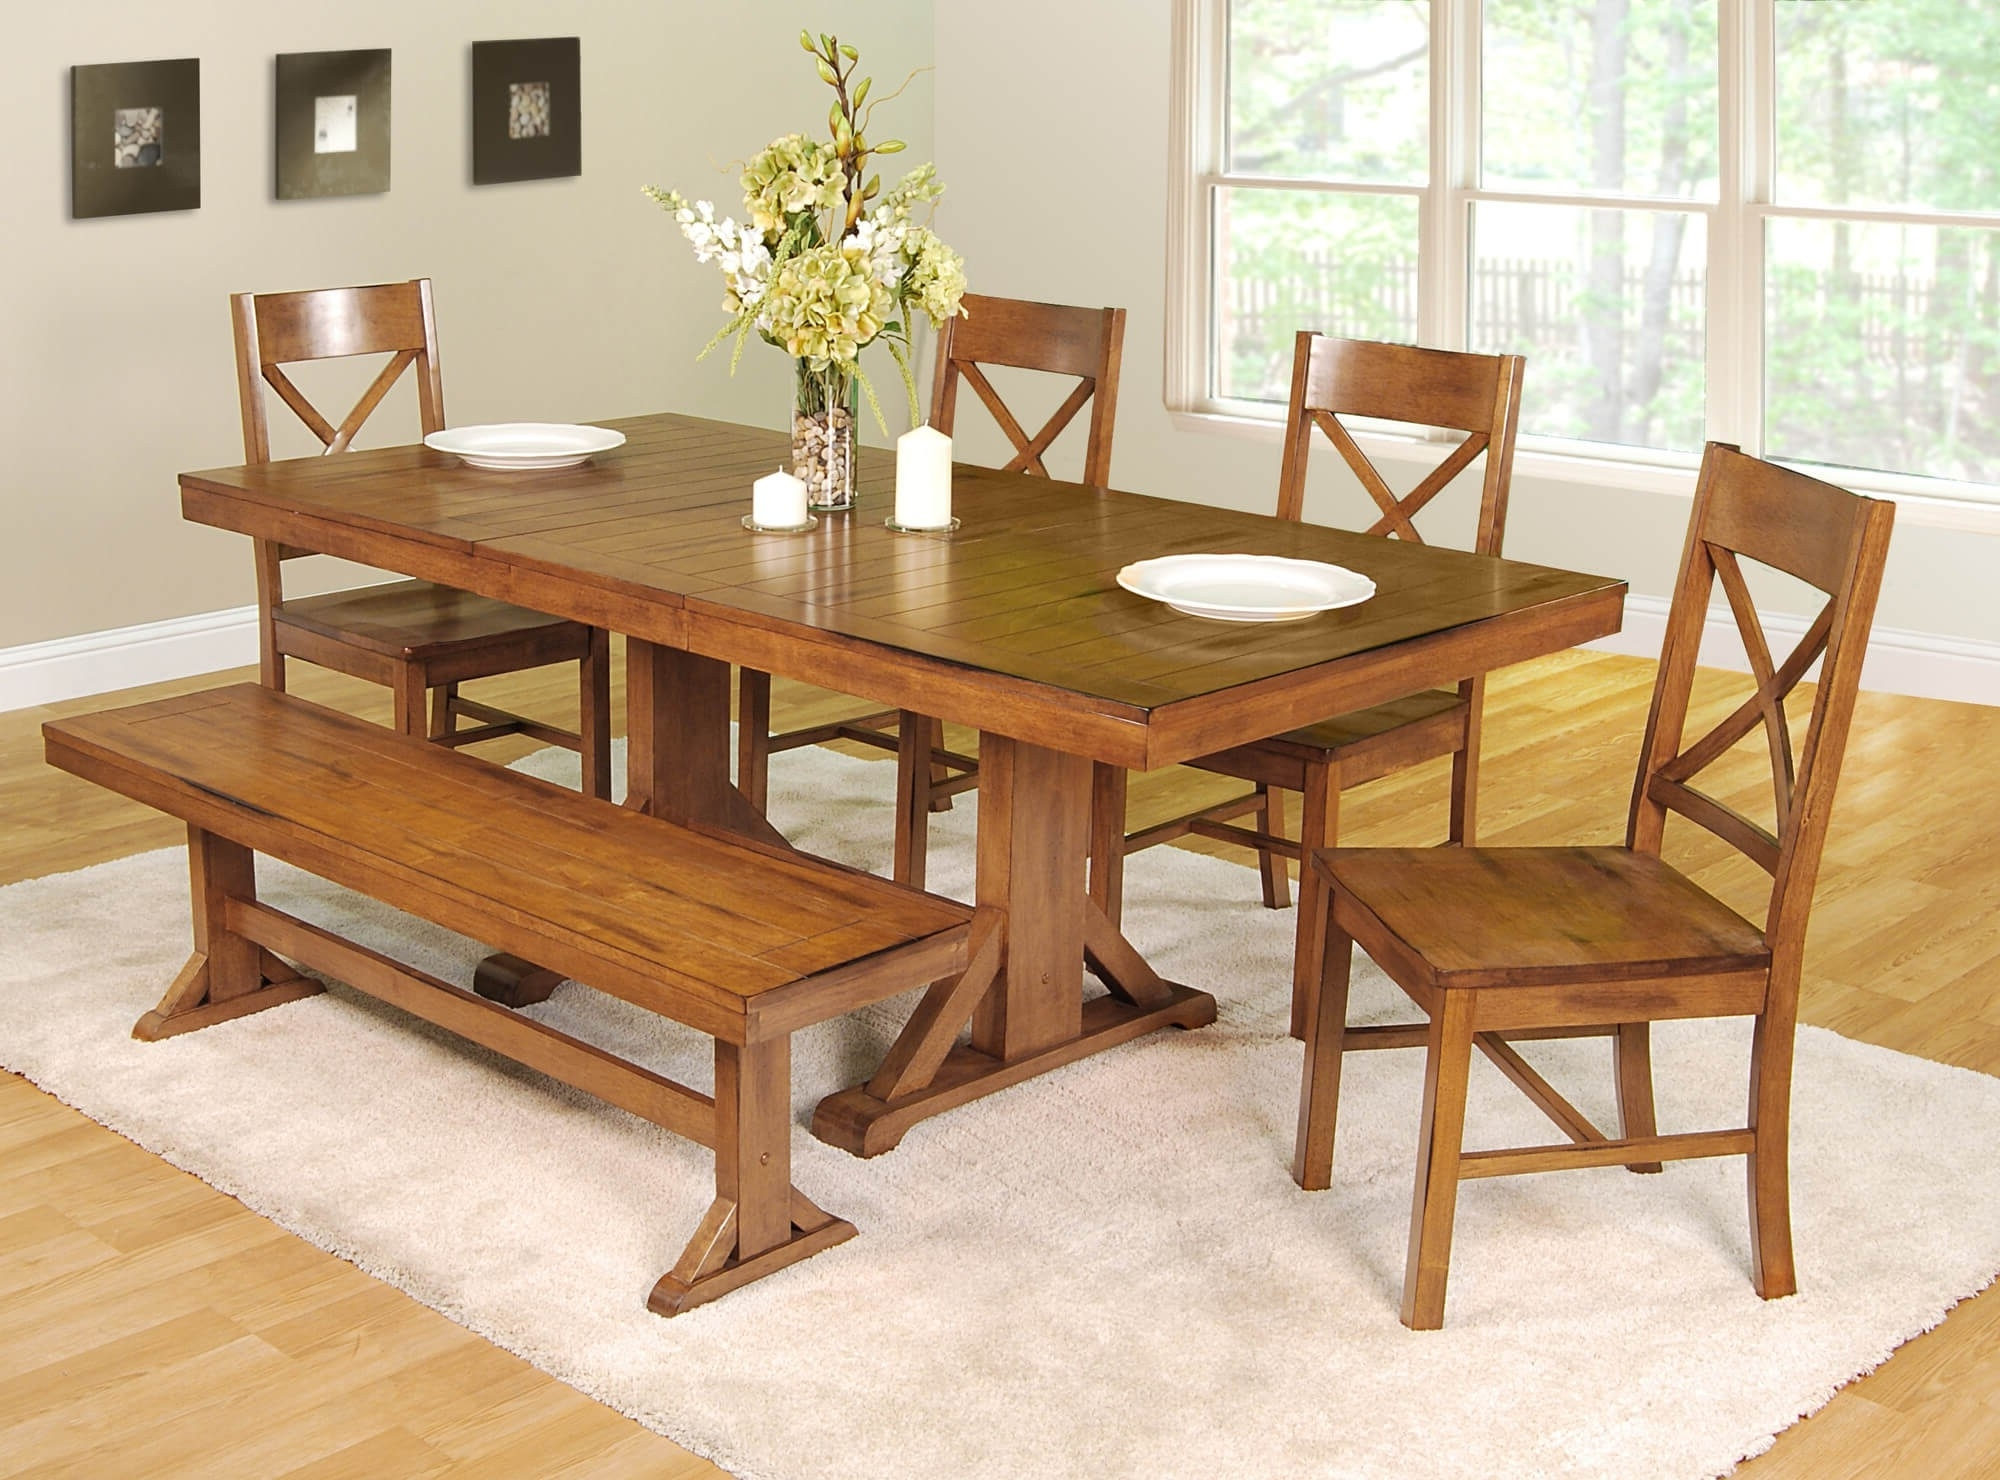 Small Two Person Dining Tables Regarding Trendy Small Dining Room Tables For Small Spaces New Maryland Merlot Slat (View 22 of 25)